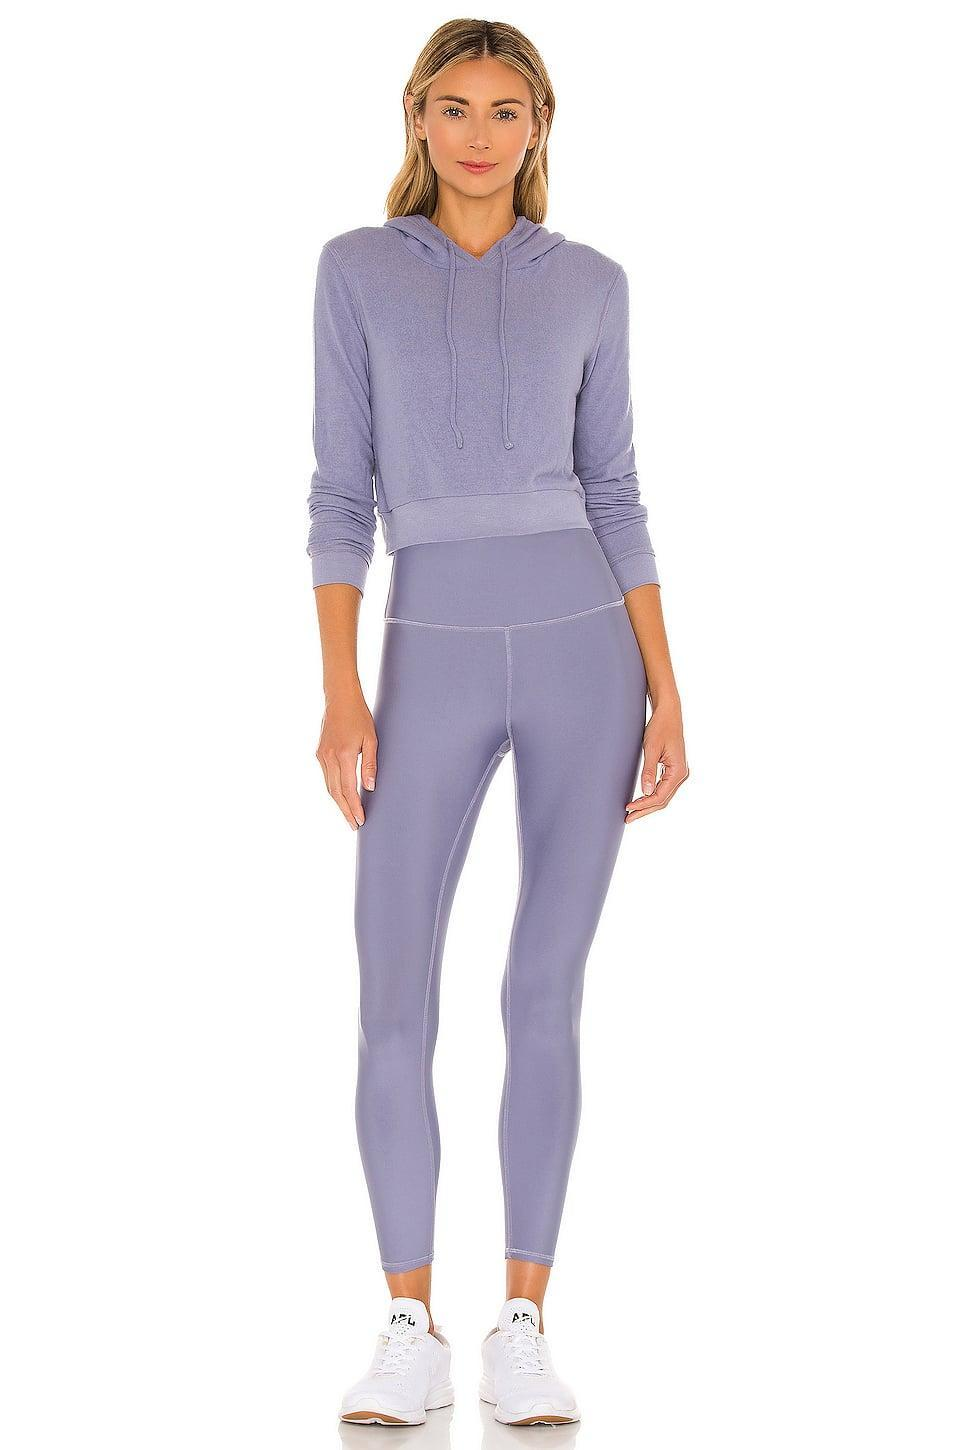 <p>We love the color of this <span>Alo Getaway Hoodie</span> ($97) and matching <span>7/8 High Waist Airlift Legging</span> ($125).</p>